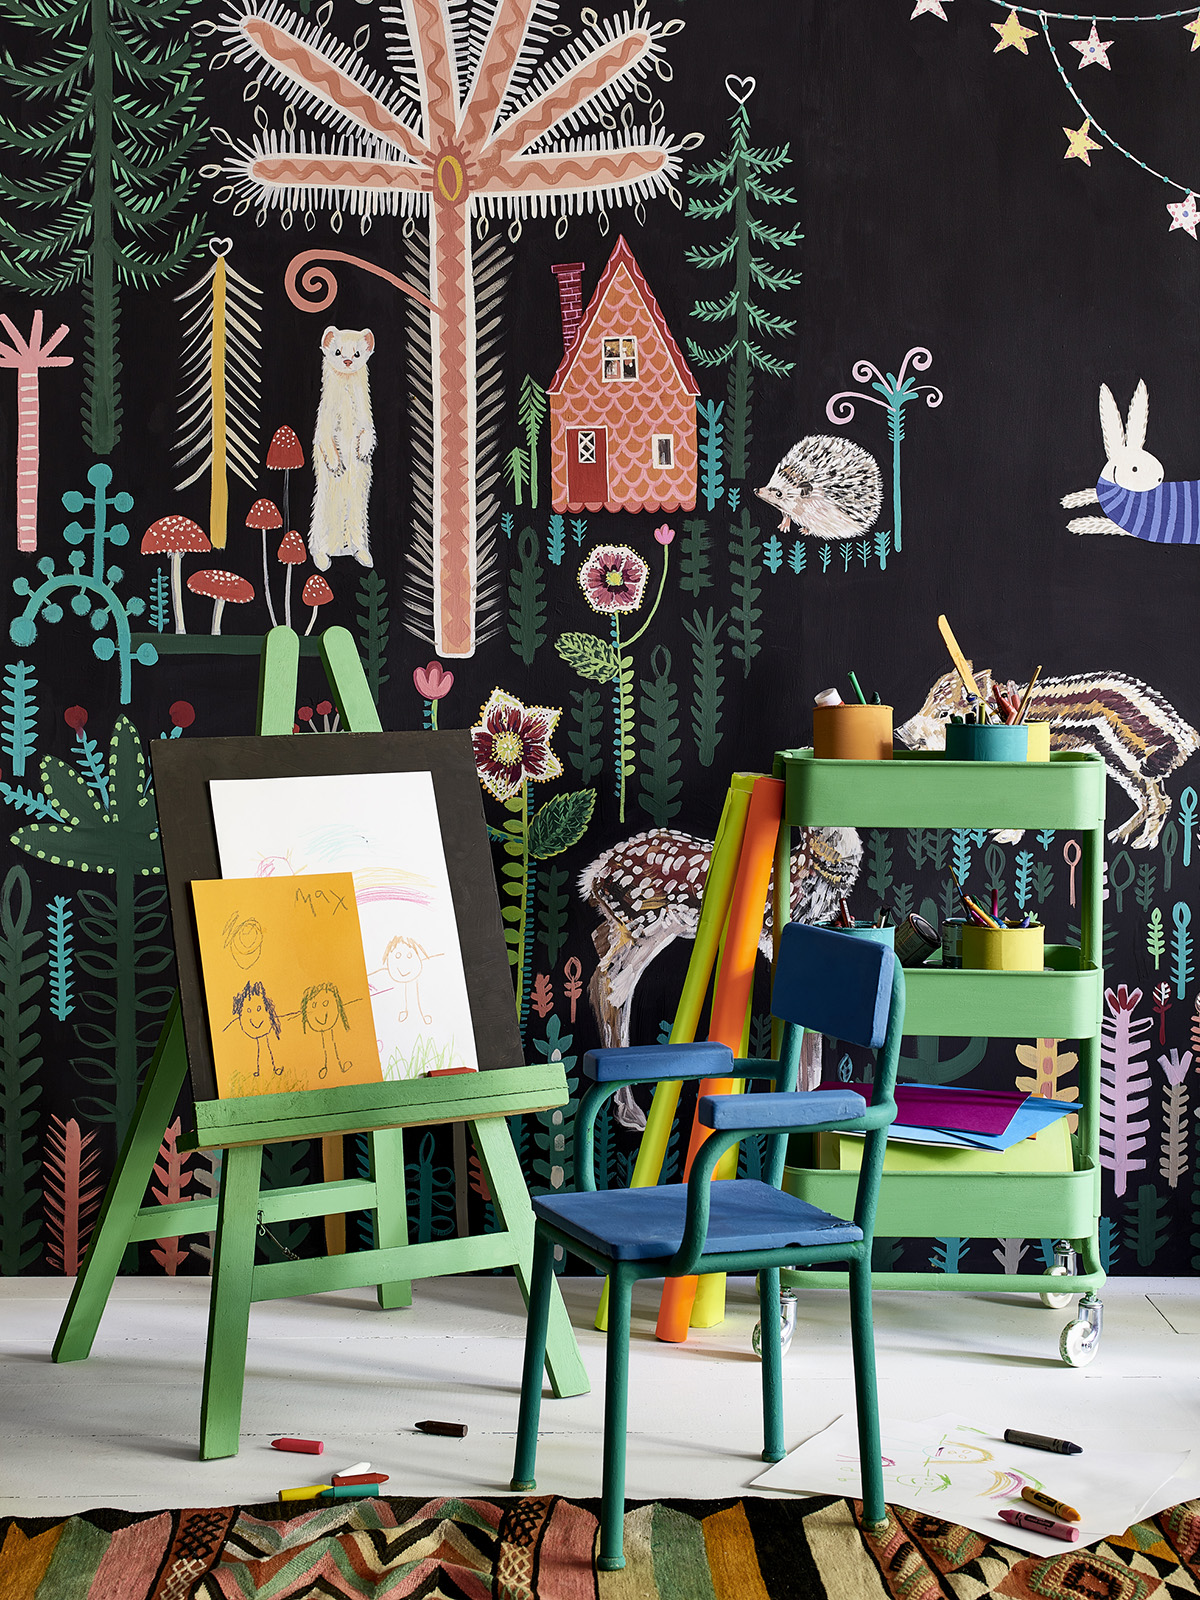 Kids painted mural with black background and brightly coloured motifs by Lucy Tiffney and brightly painted kids furniture by Annie Sloan